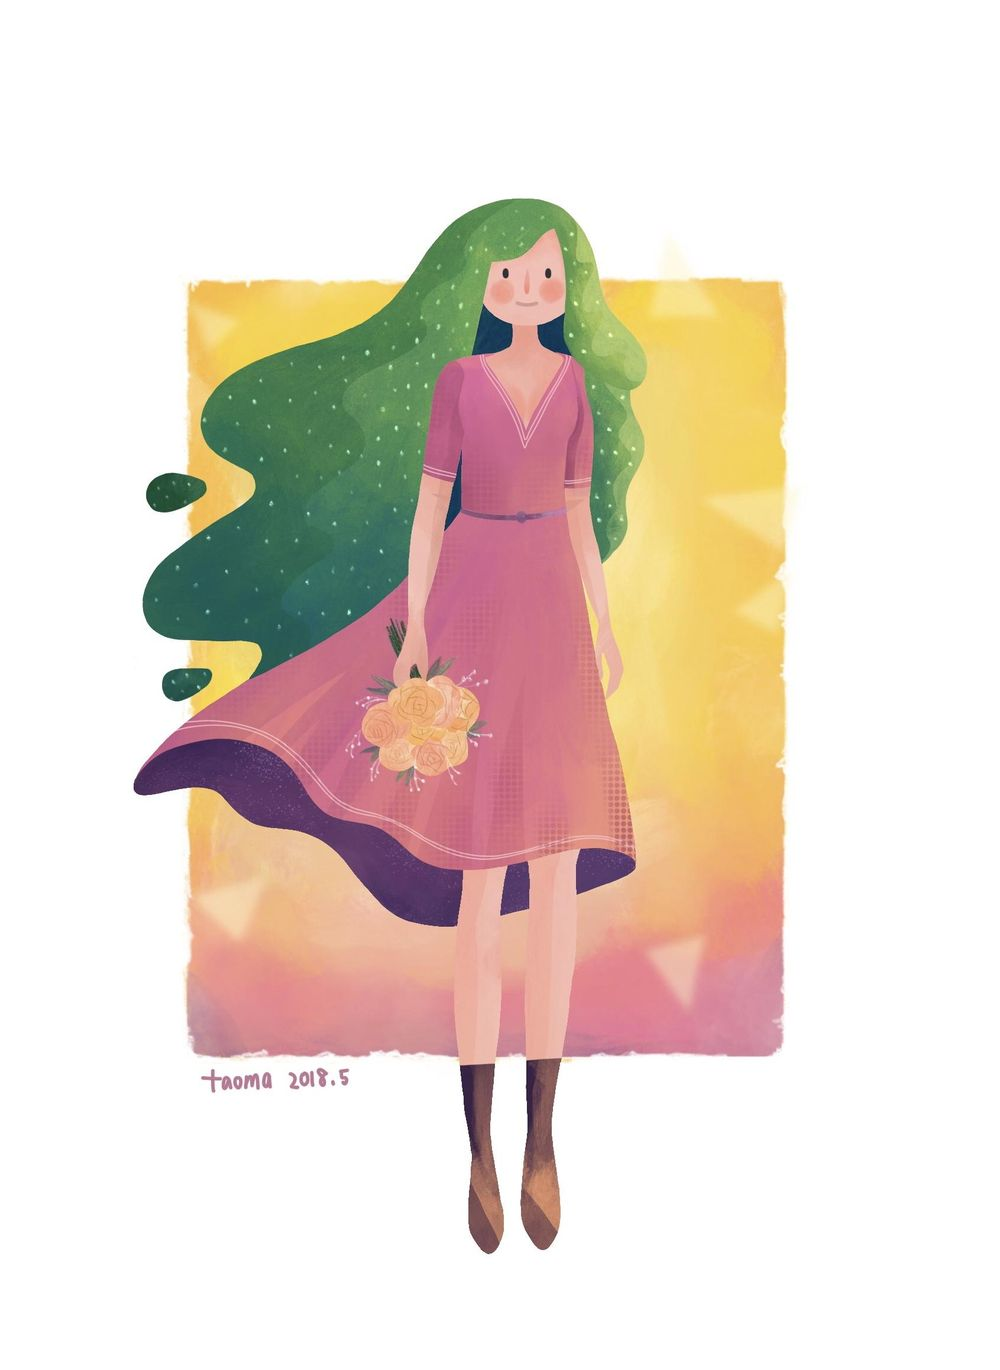 girl - image 1 - student project